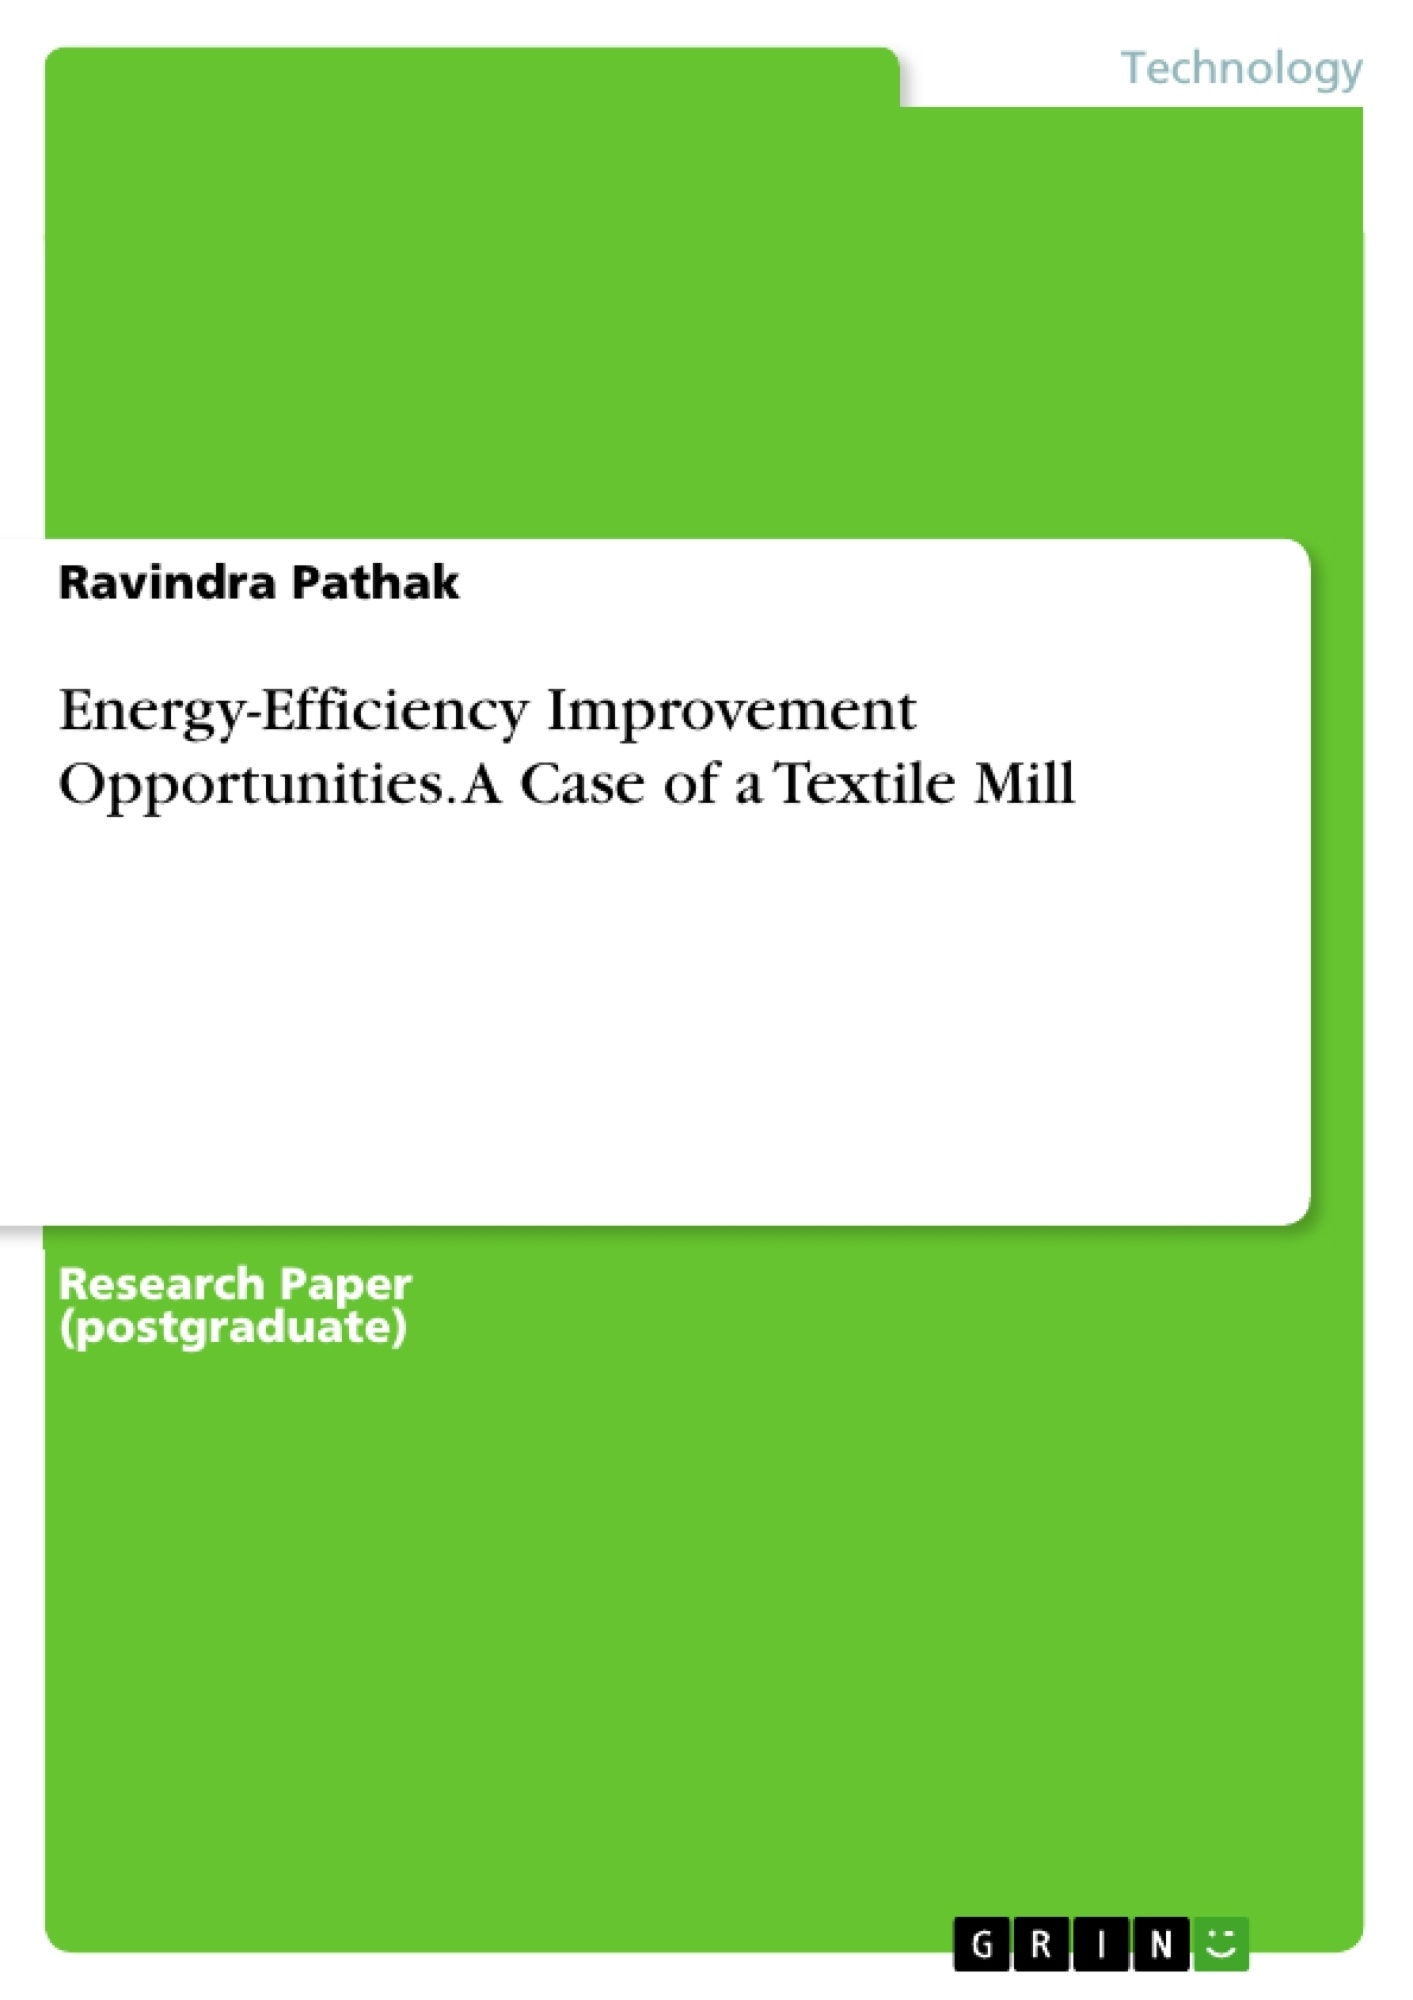 Titel: Energy-Efficiency Improvement Opportunities. A Case of a Textile Mill